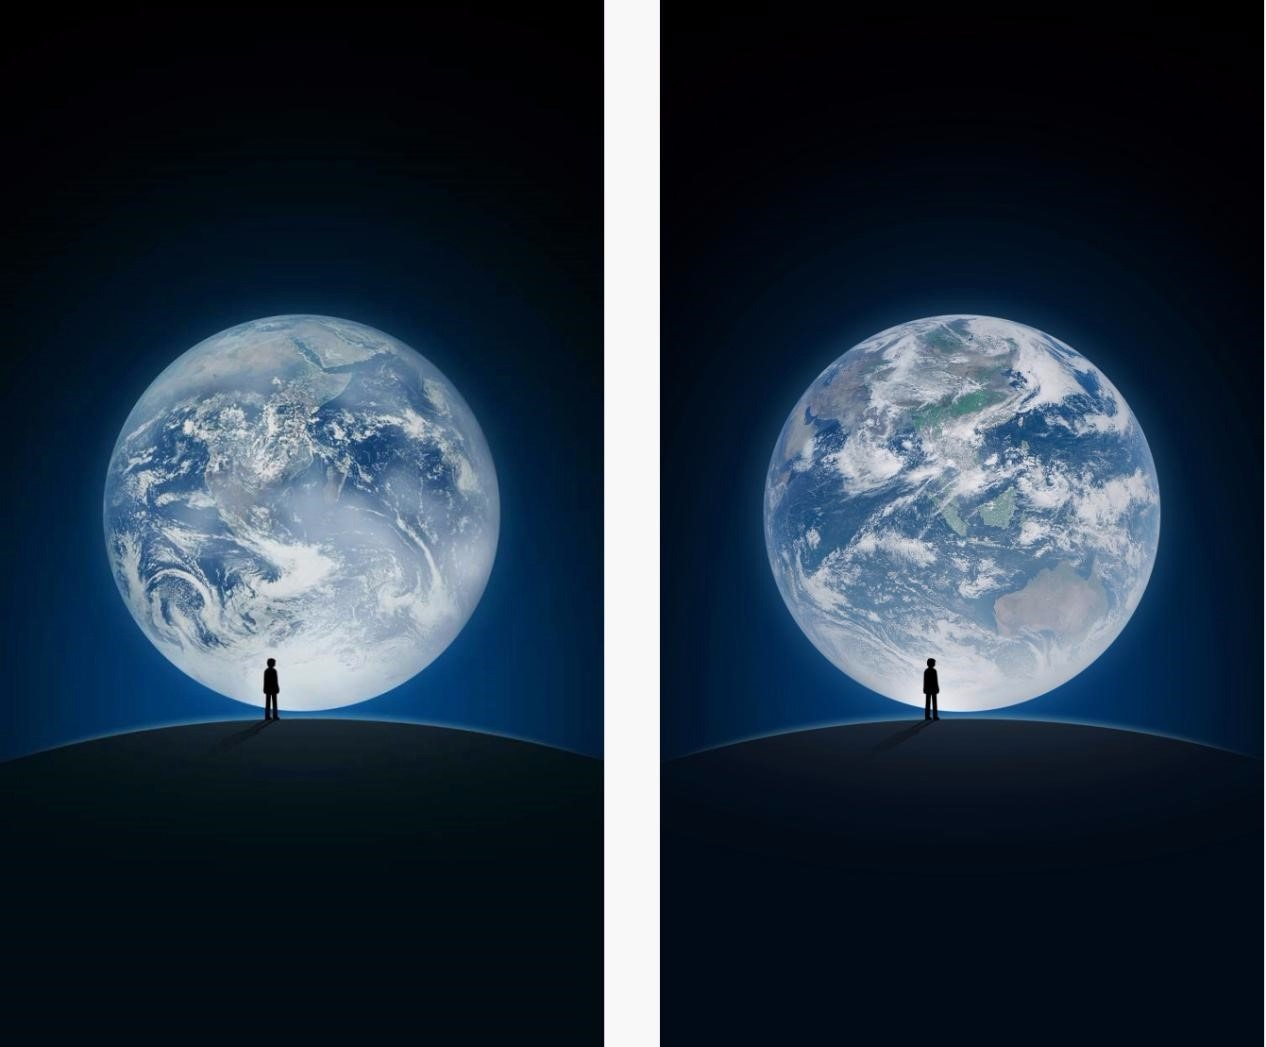 WeChat's original splash page (left) featured NASA's iconic Blue Marble shot. The updated page (right) will feature a new image captured by Chinese satellite Feng Yun-4A.